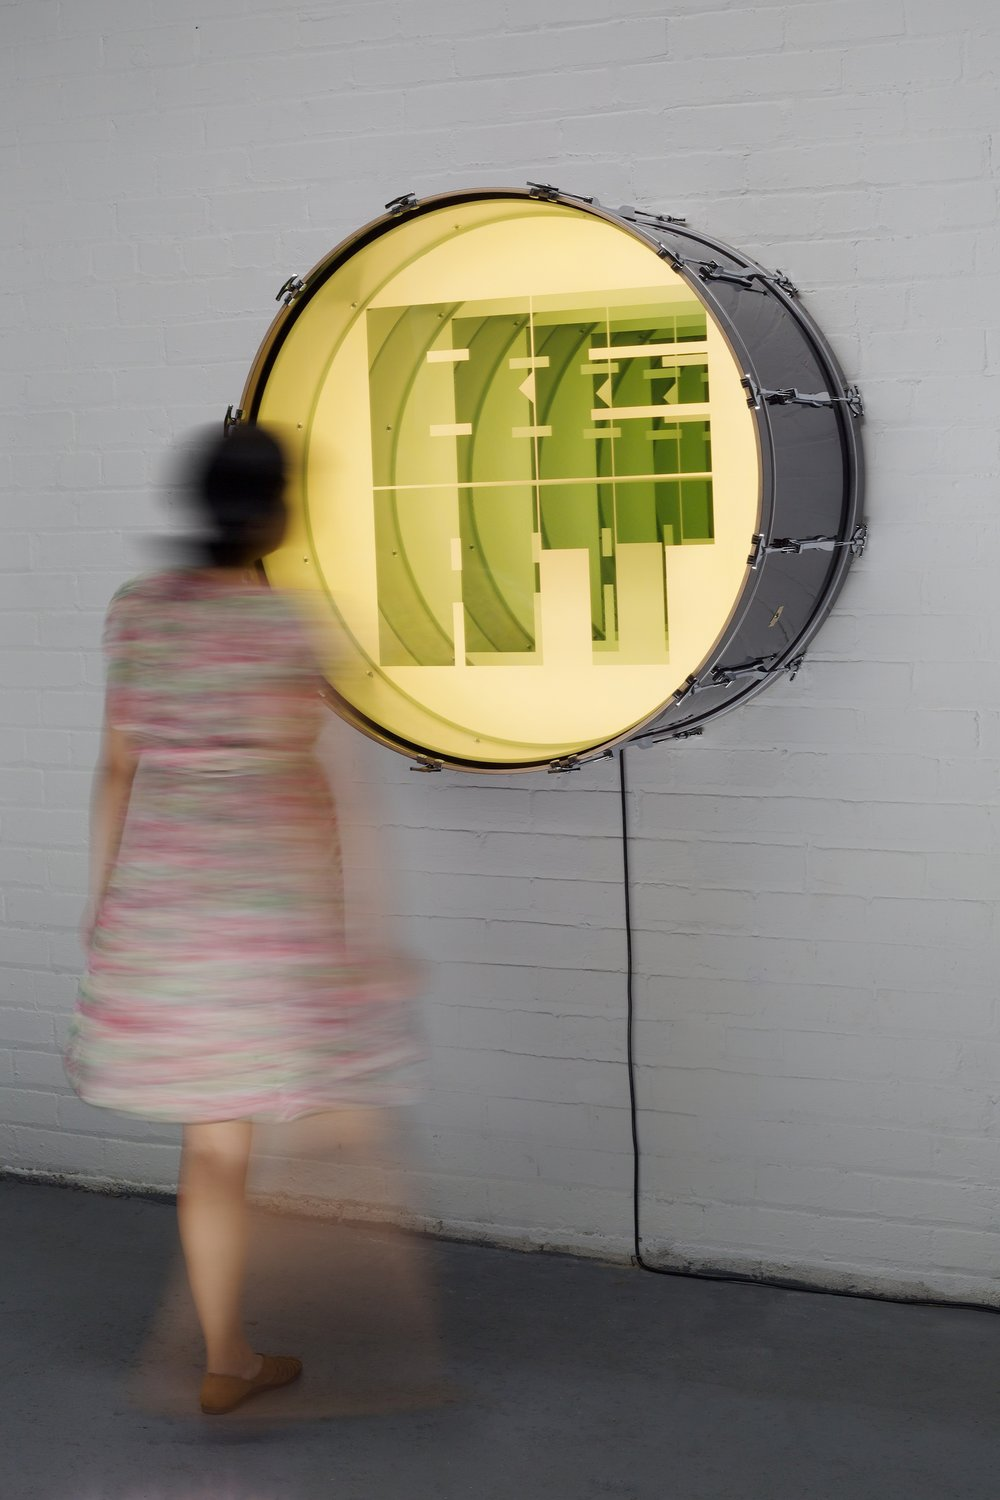 Iván Navarro, Beat, 2016, Drum, LED lights, mirror, one-way mirror and electric energy, 91.5 (diam) x 56 (depth) cm, Courtesy of the Artist and Galerie Daniel Templon